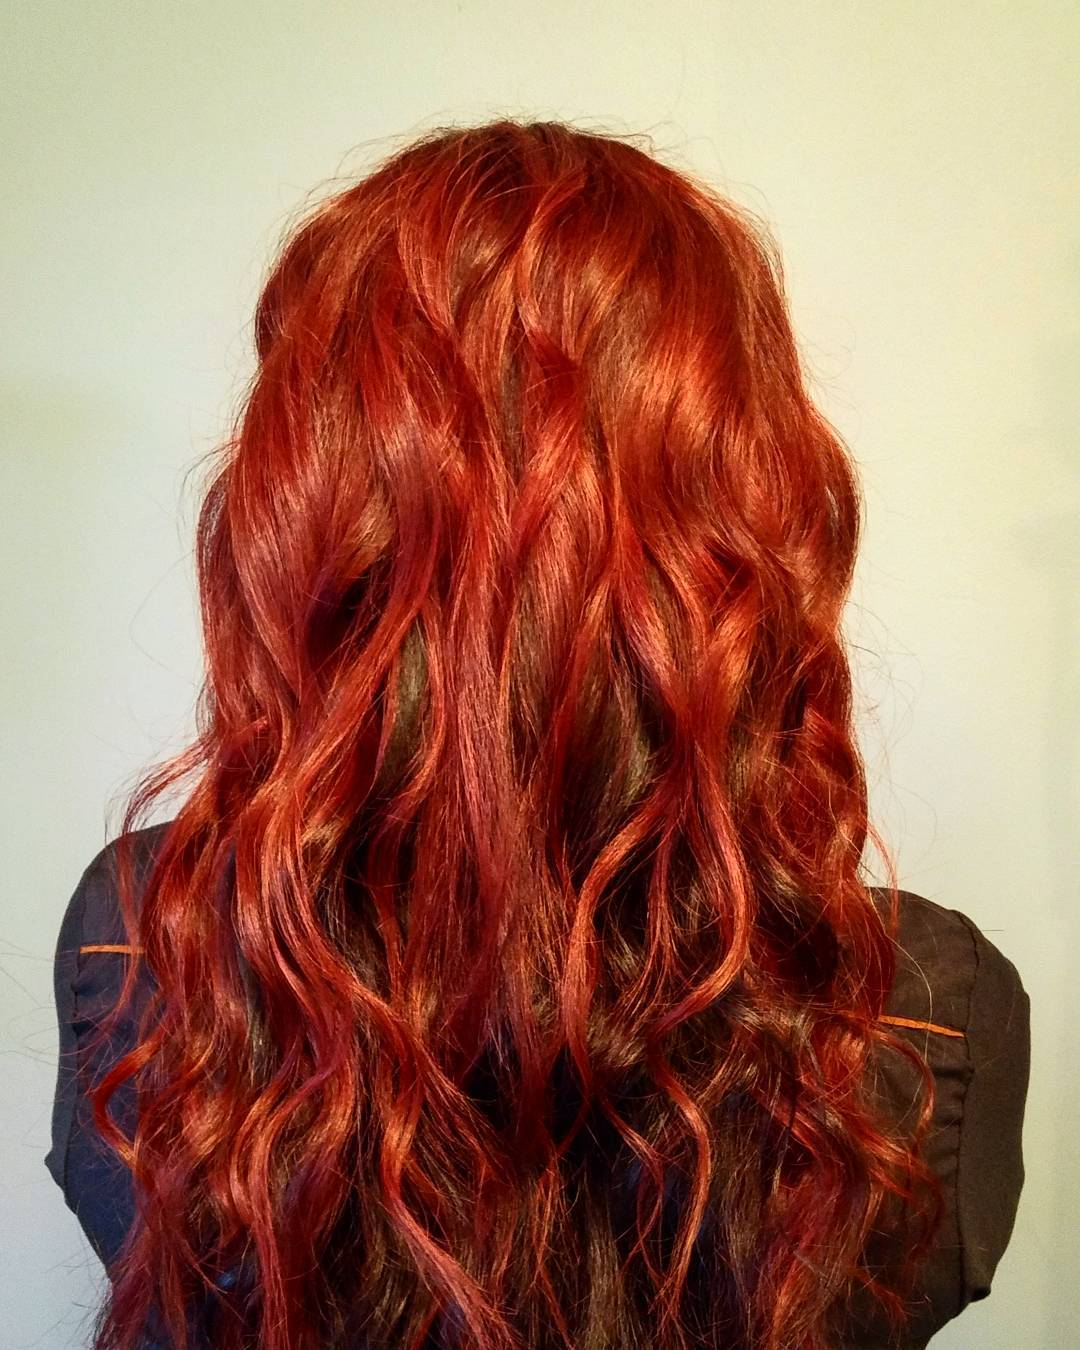 Curly Red Hairs